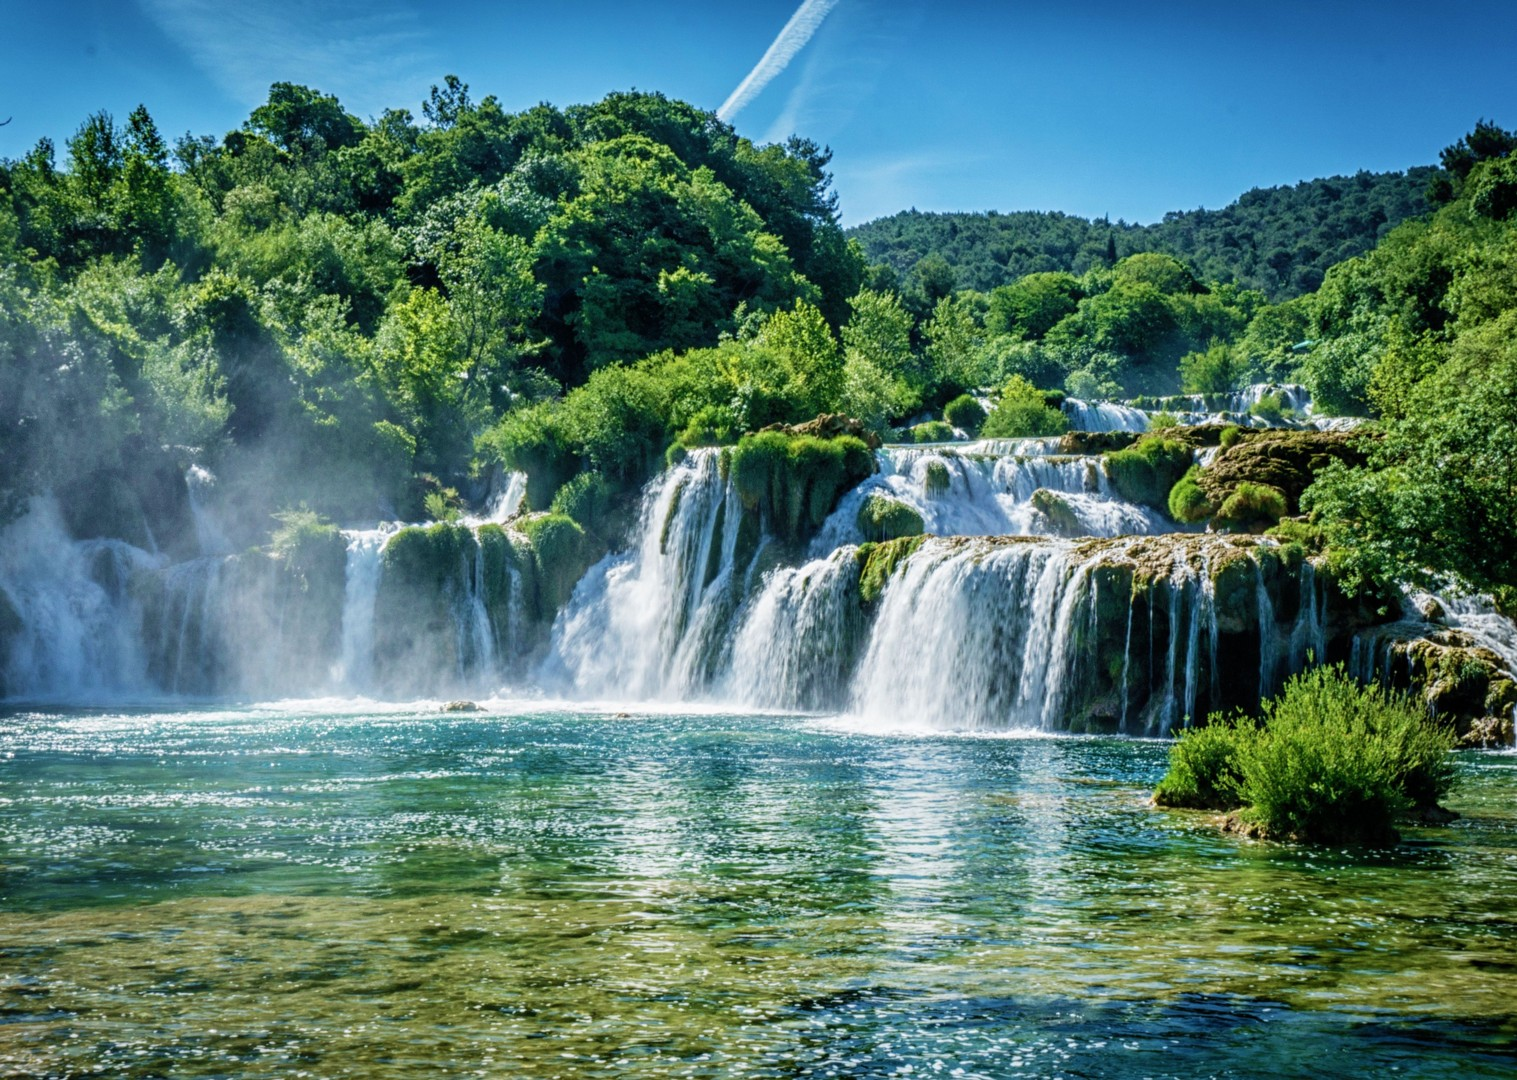 dalmatian-national-park-croatia-leisure-cycling.jpg - Croatia - Dalmatian National Parks and Islands Plus - Bike and Boat Holiday - Leisure Cycling